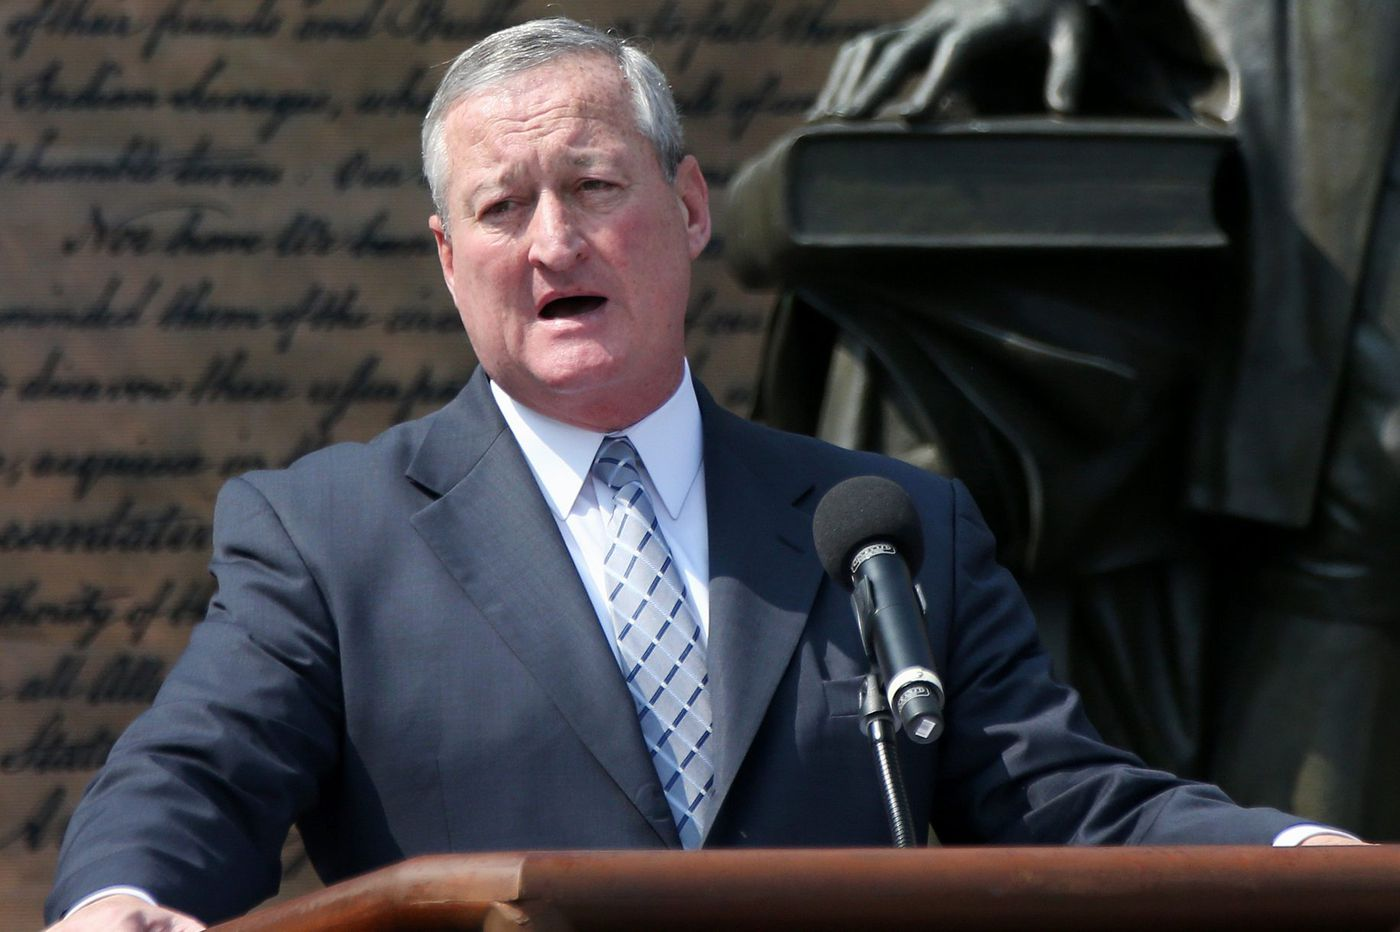 Why Glaxo isn't meeting with Mayor Kenney while he's in London